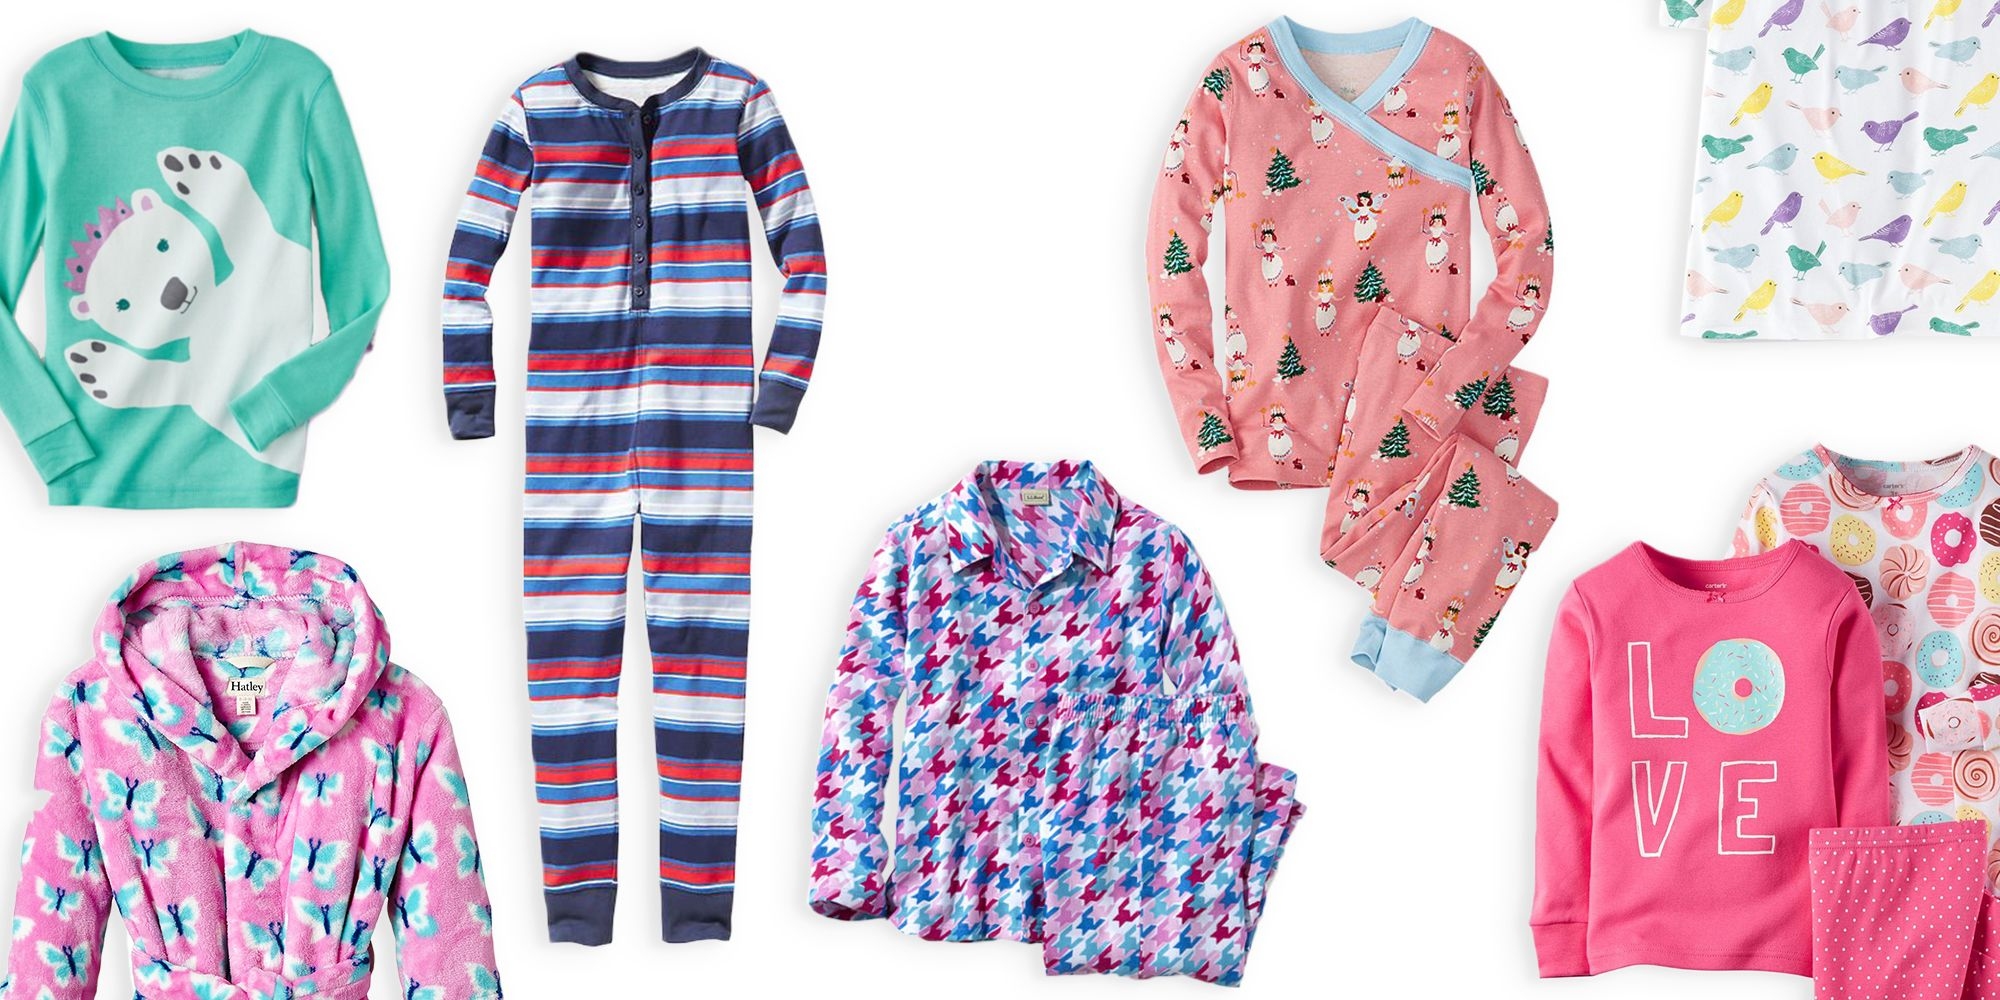 10 Best Pajamas For Girls in 2018 - Cute Cotton and Flannel Girls ...